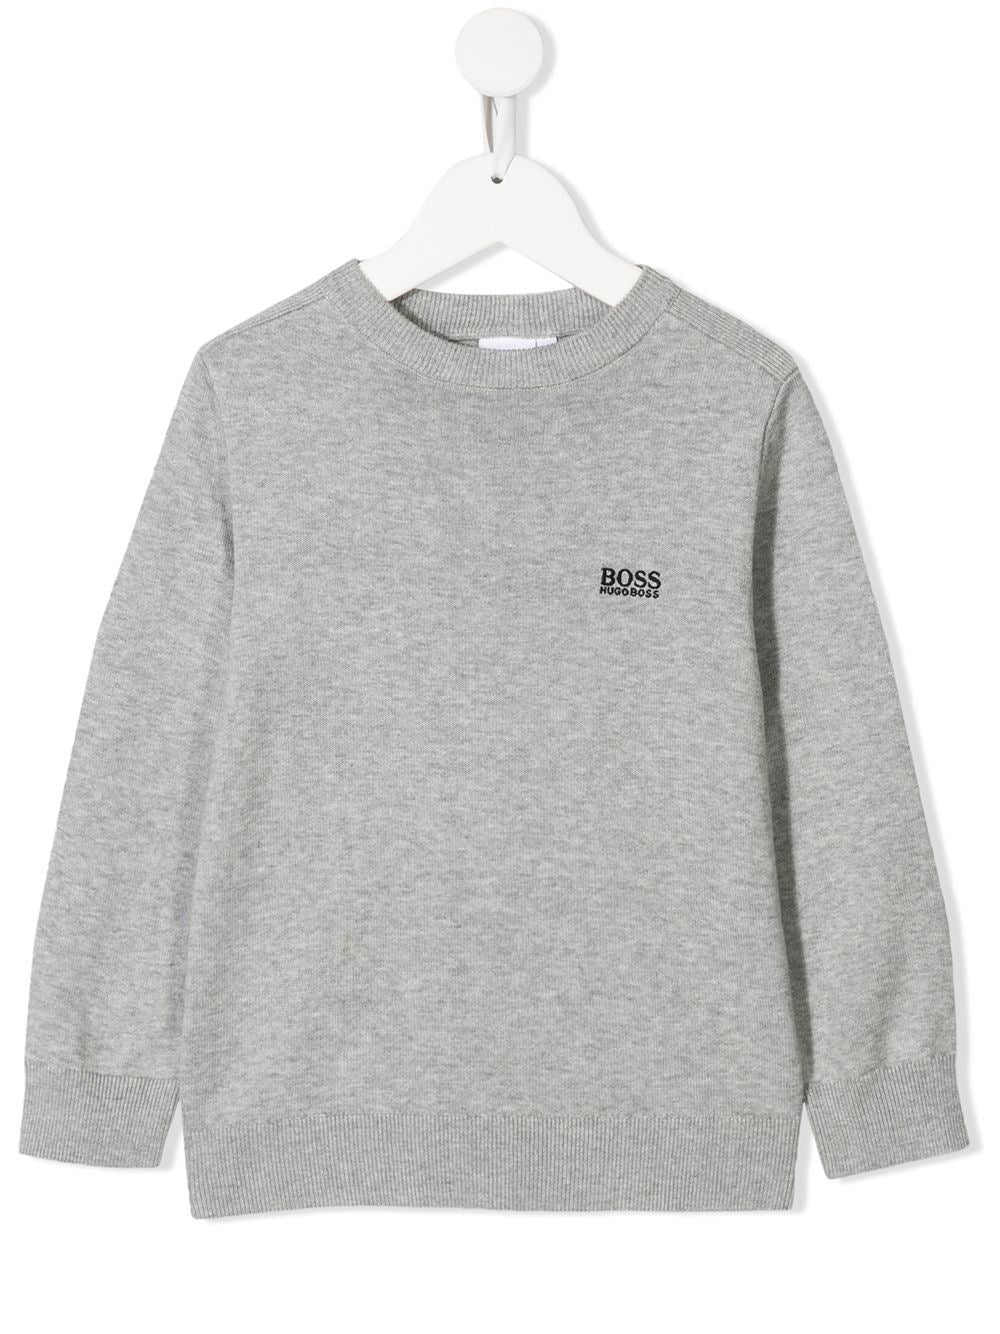 BOSS KIDS embroidered logo jumper - Maison De Fashion